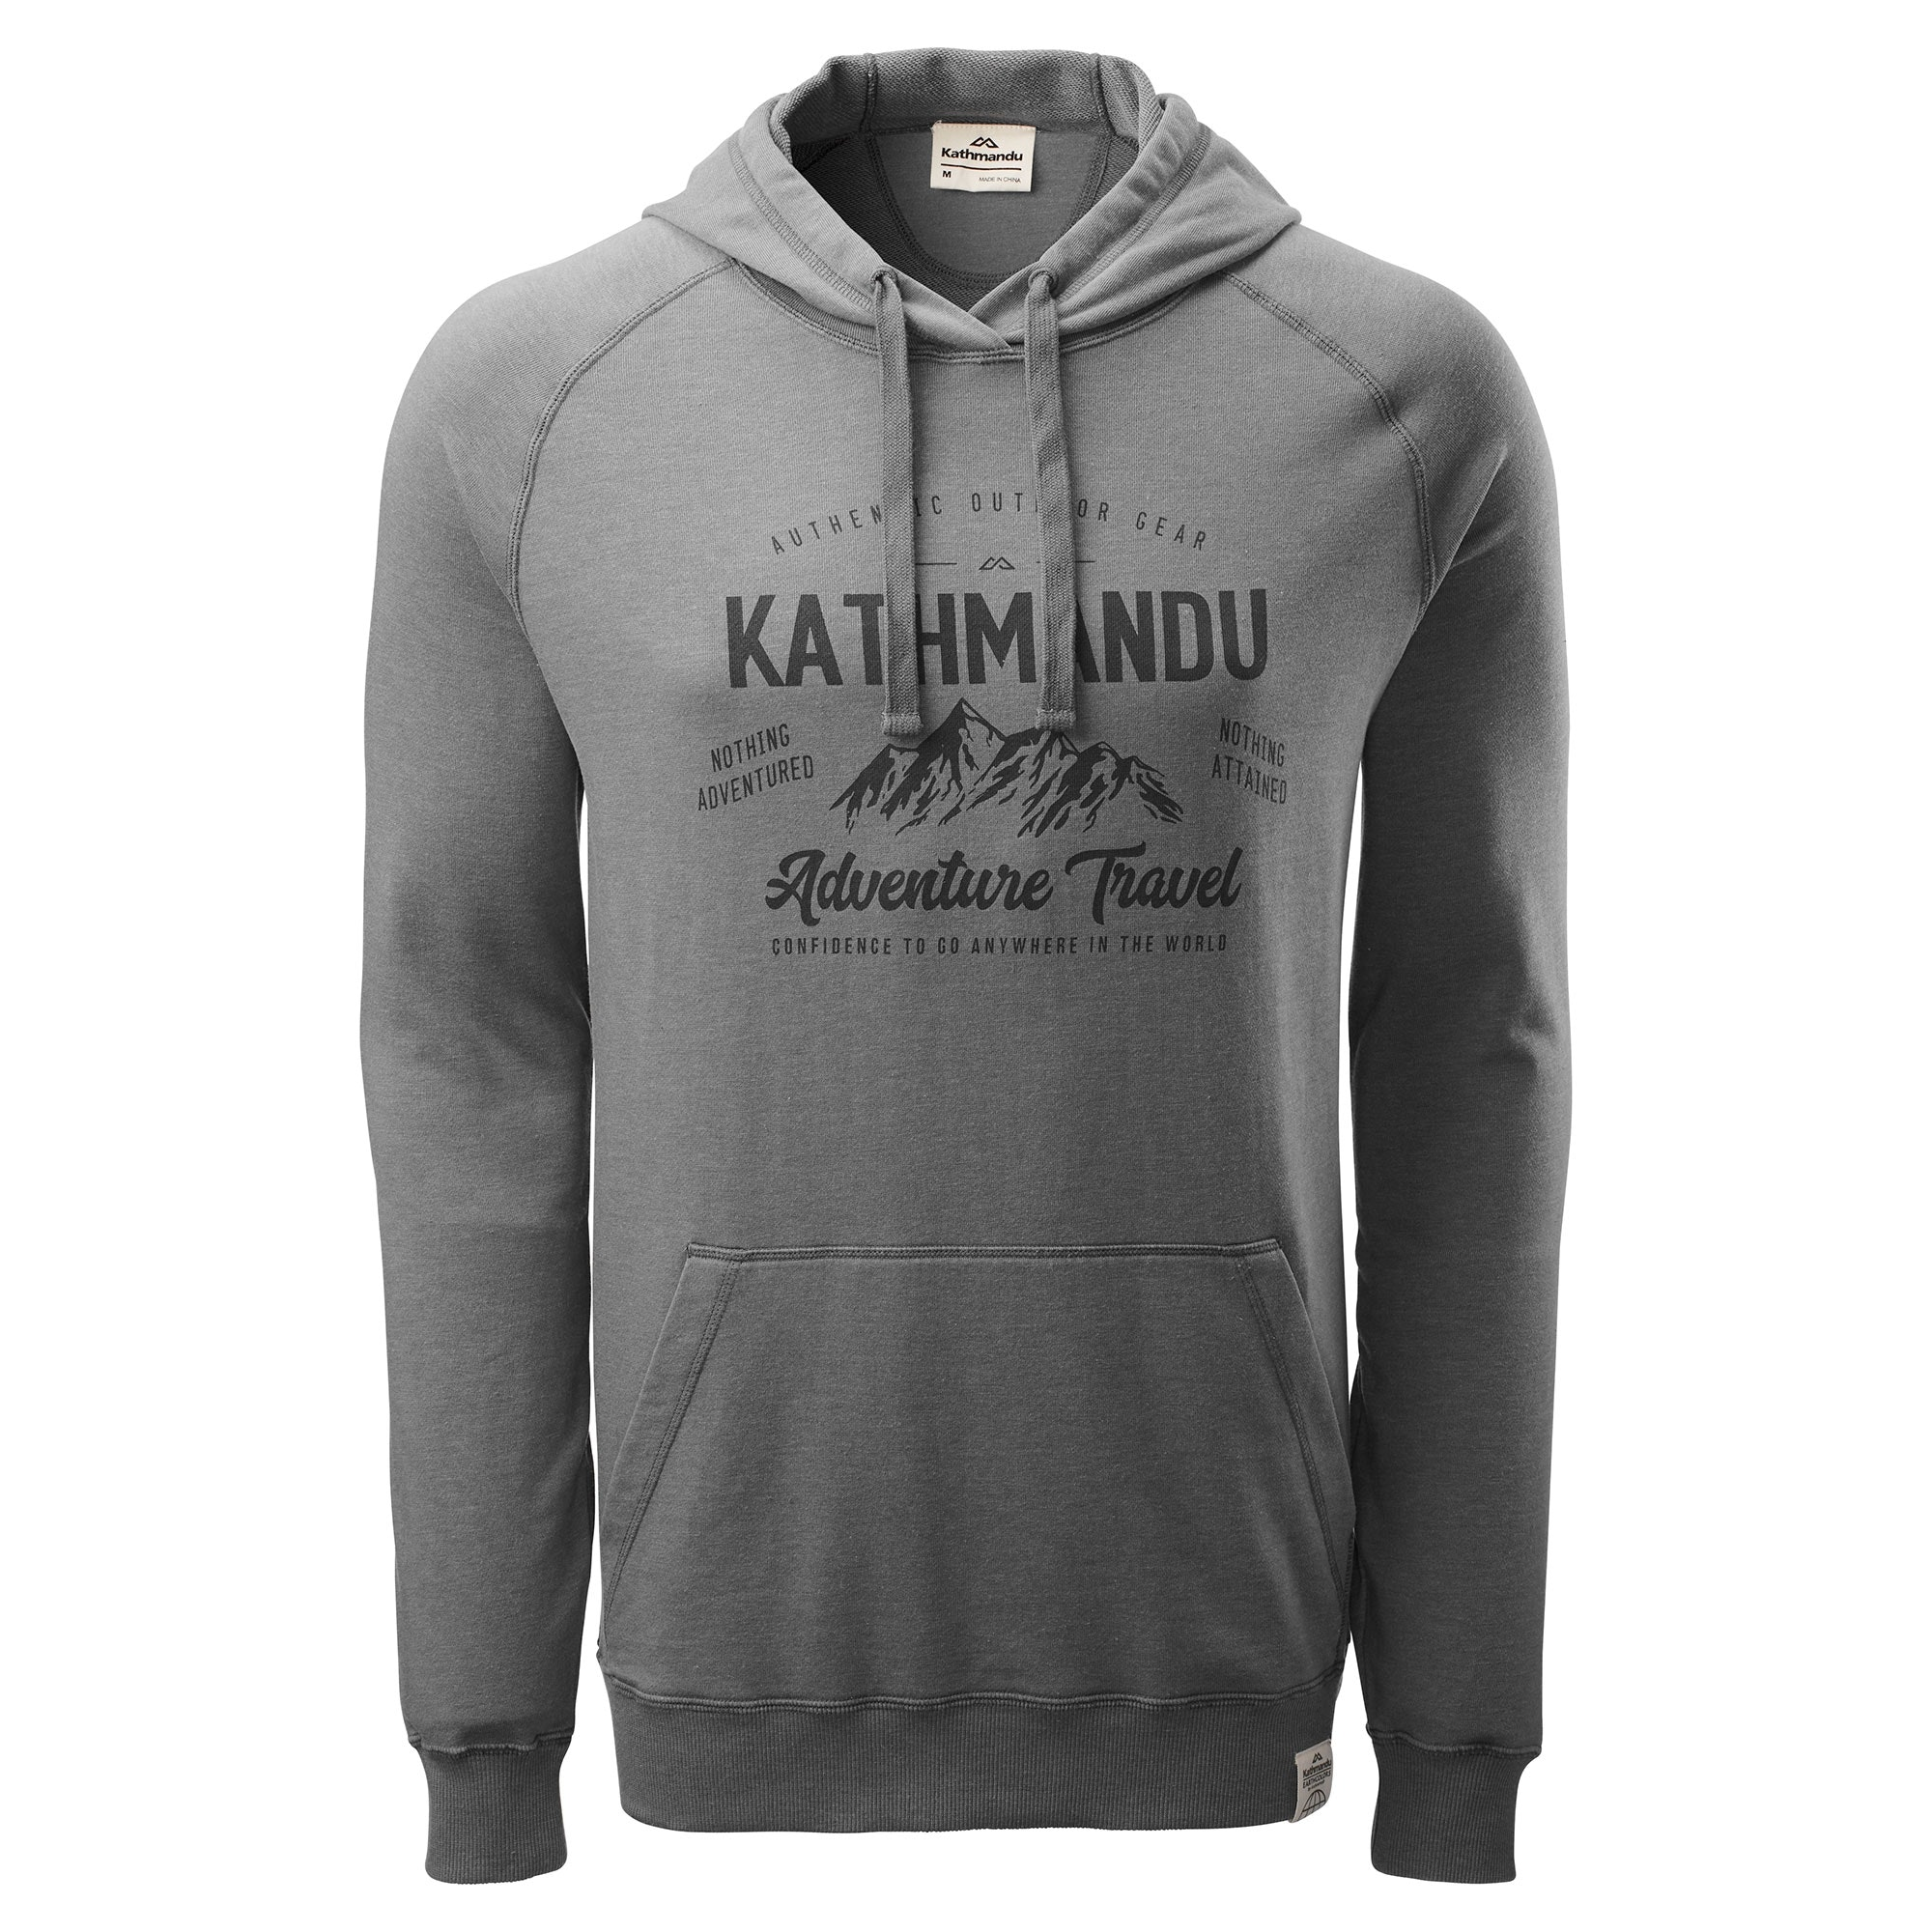 NEW-Kathmandu-Men-039-s-Earth-Hooded-Pullover-Jumper-Hoodie-Top